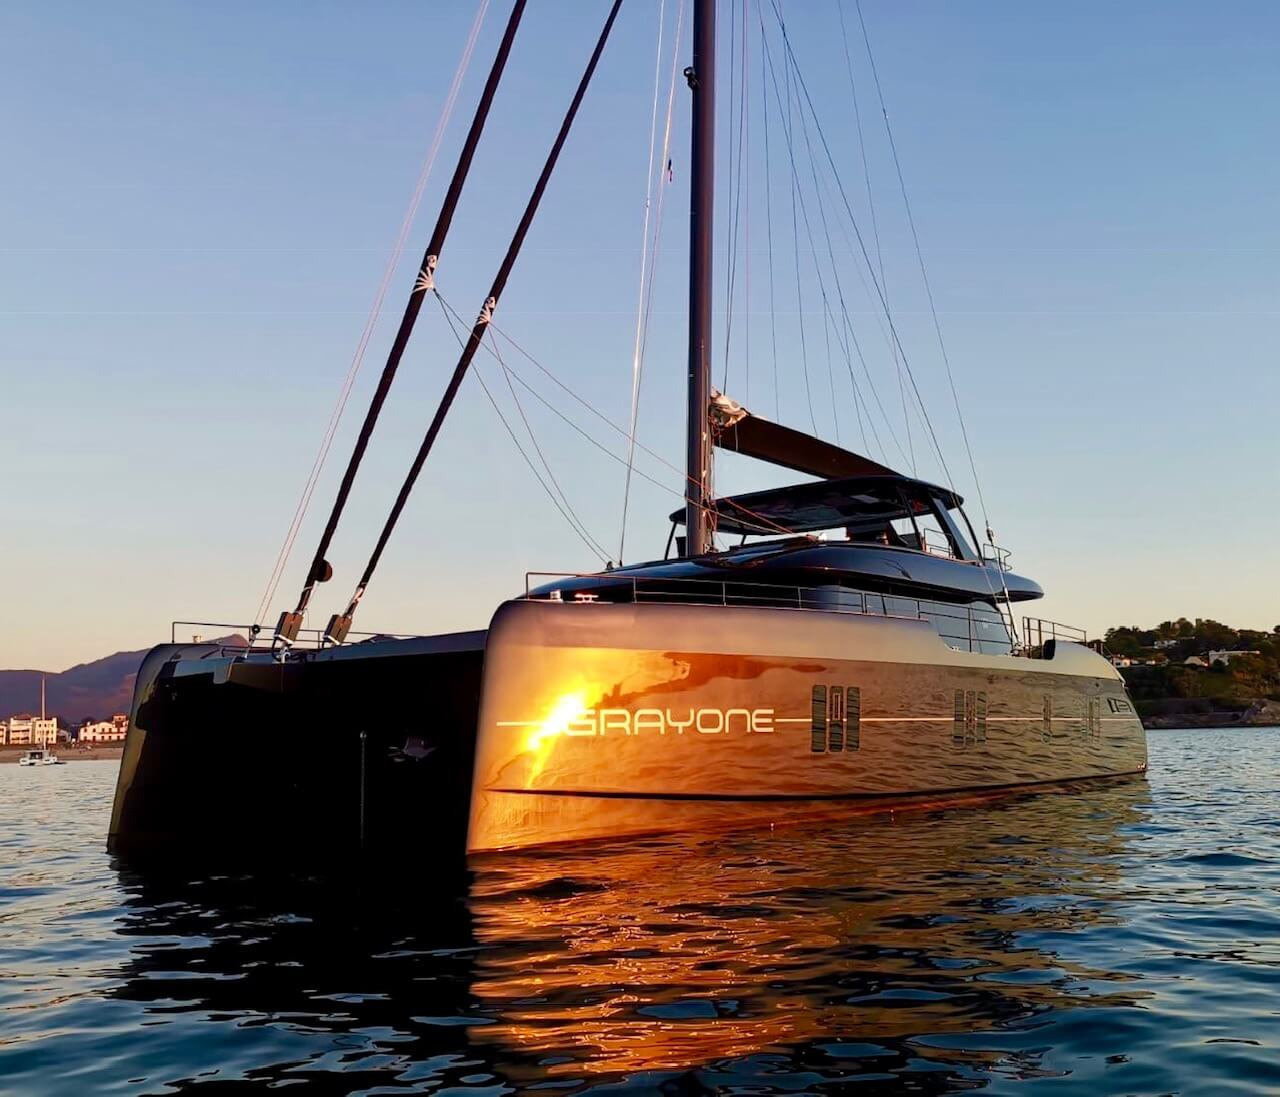 GRAYONE Sunreef Catamaran 1